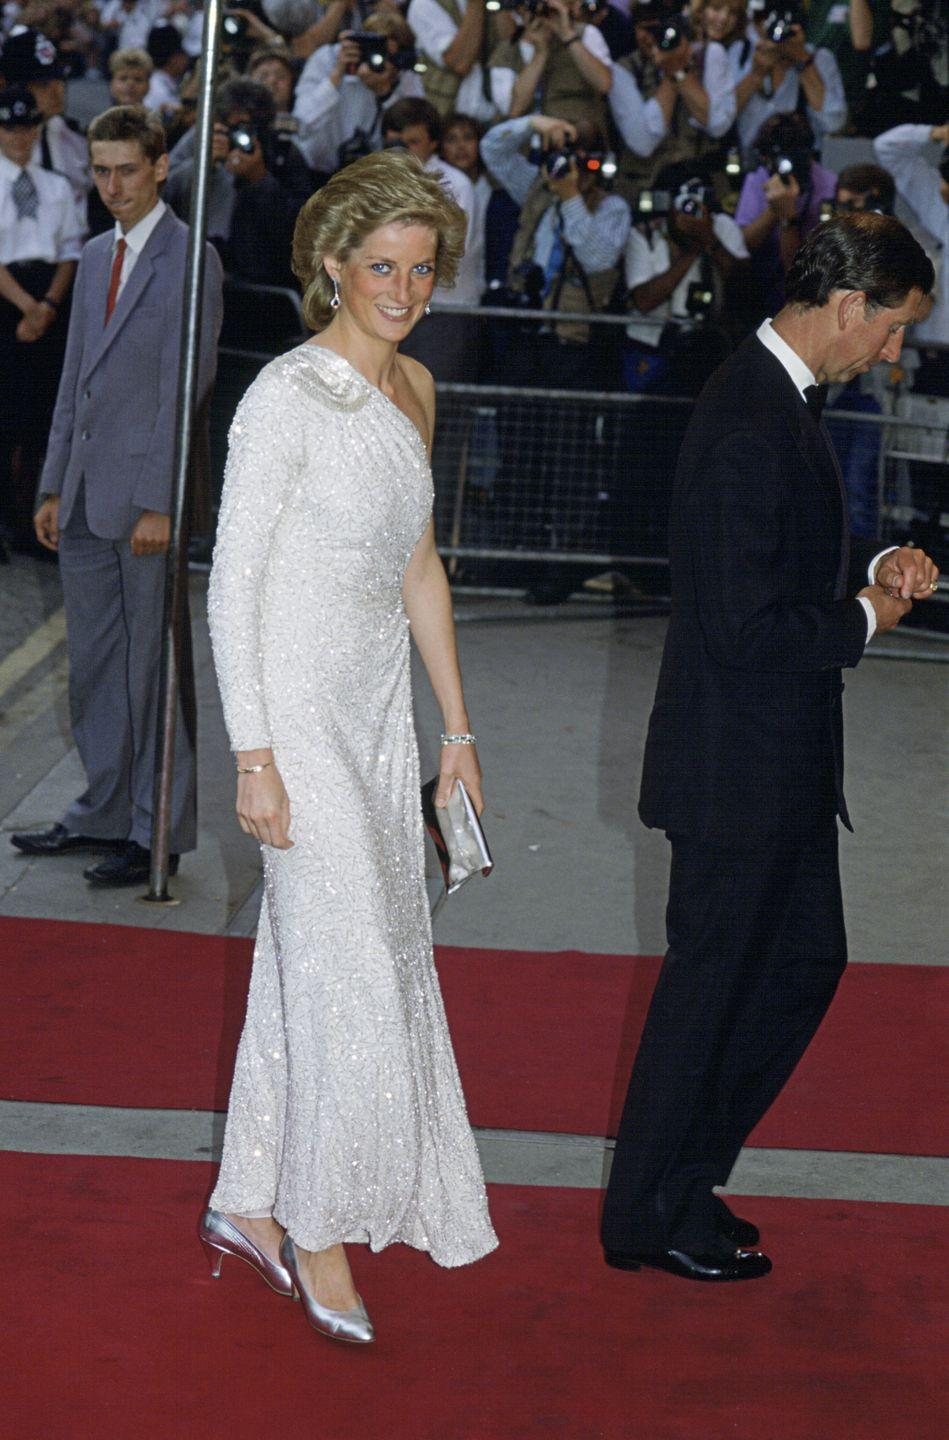 <p>Princess Diana seemed to be a fan of the Bond movies, as she attended many of their premieres during her life time. Here, she was photographed attending the <em>A License To Kill </em>premiere, wearing a white asymmetric gown from Japanese designer Hachi<em>.</em></p>